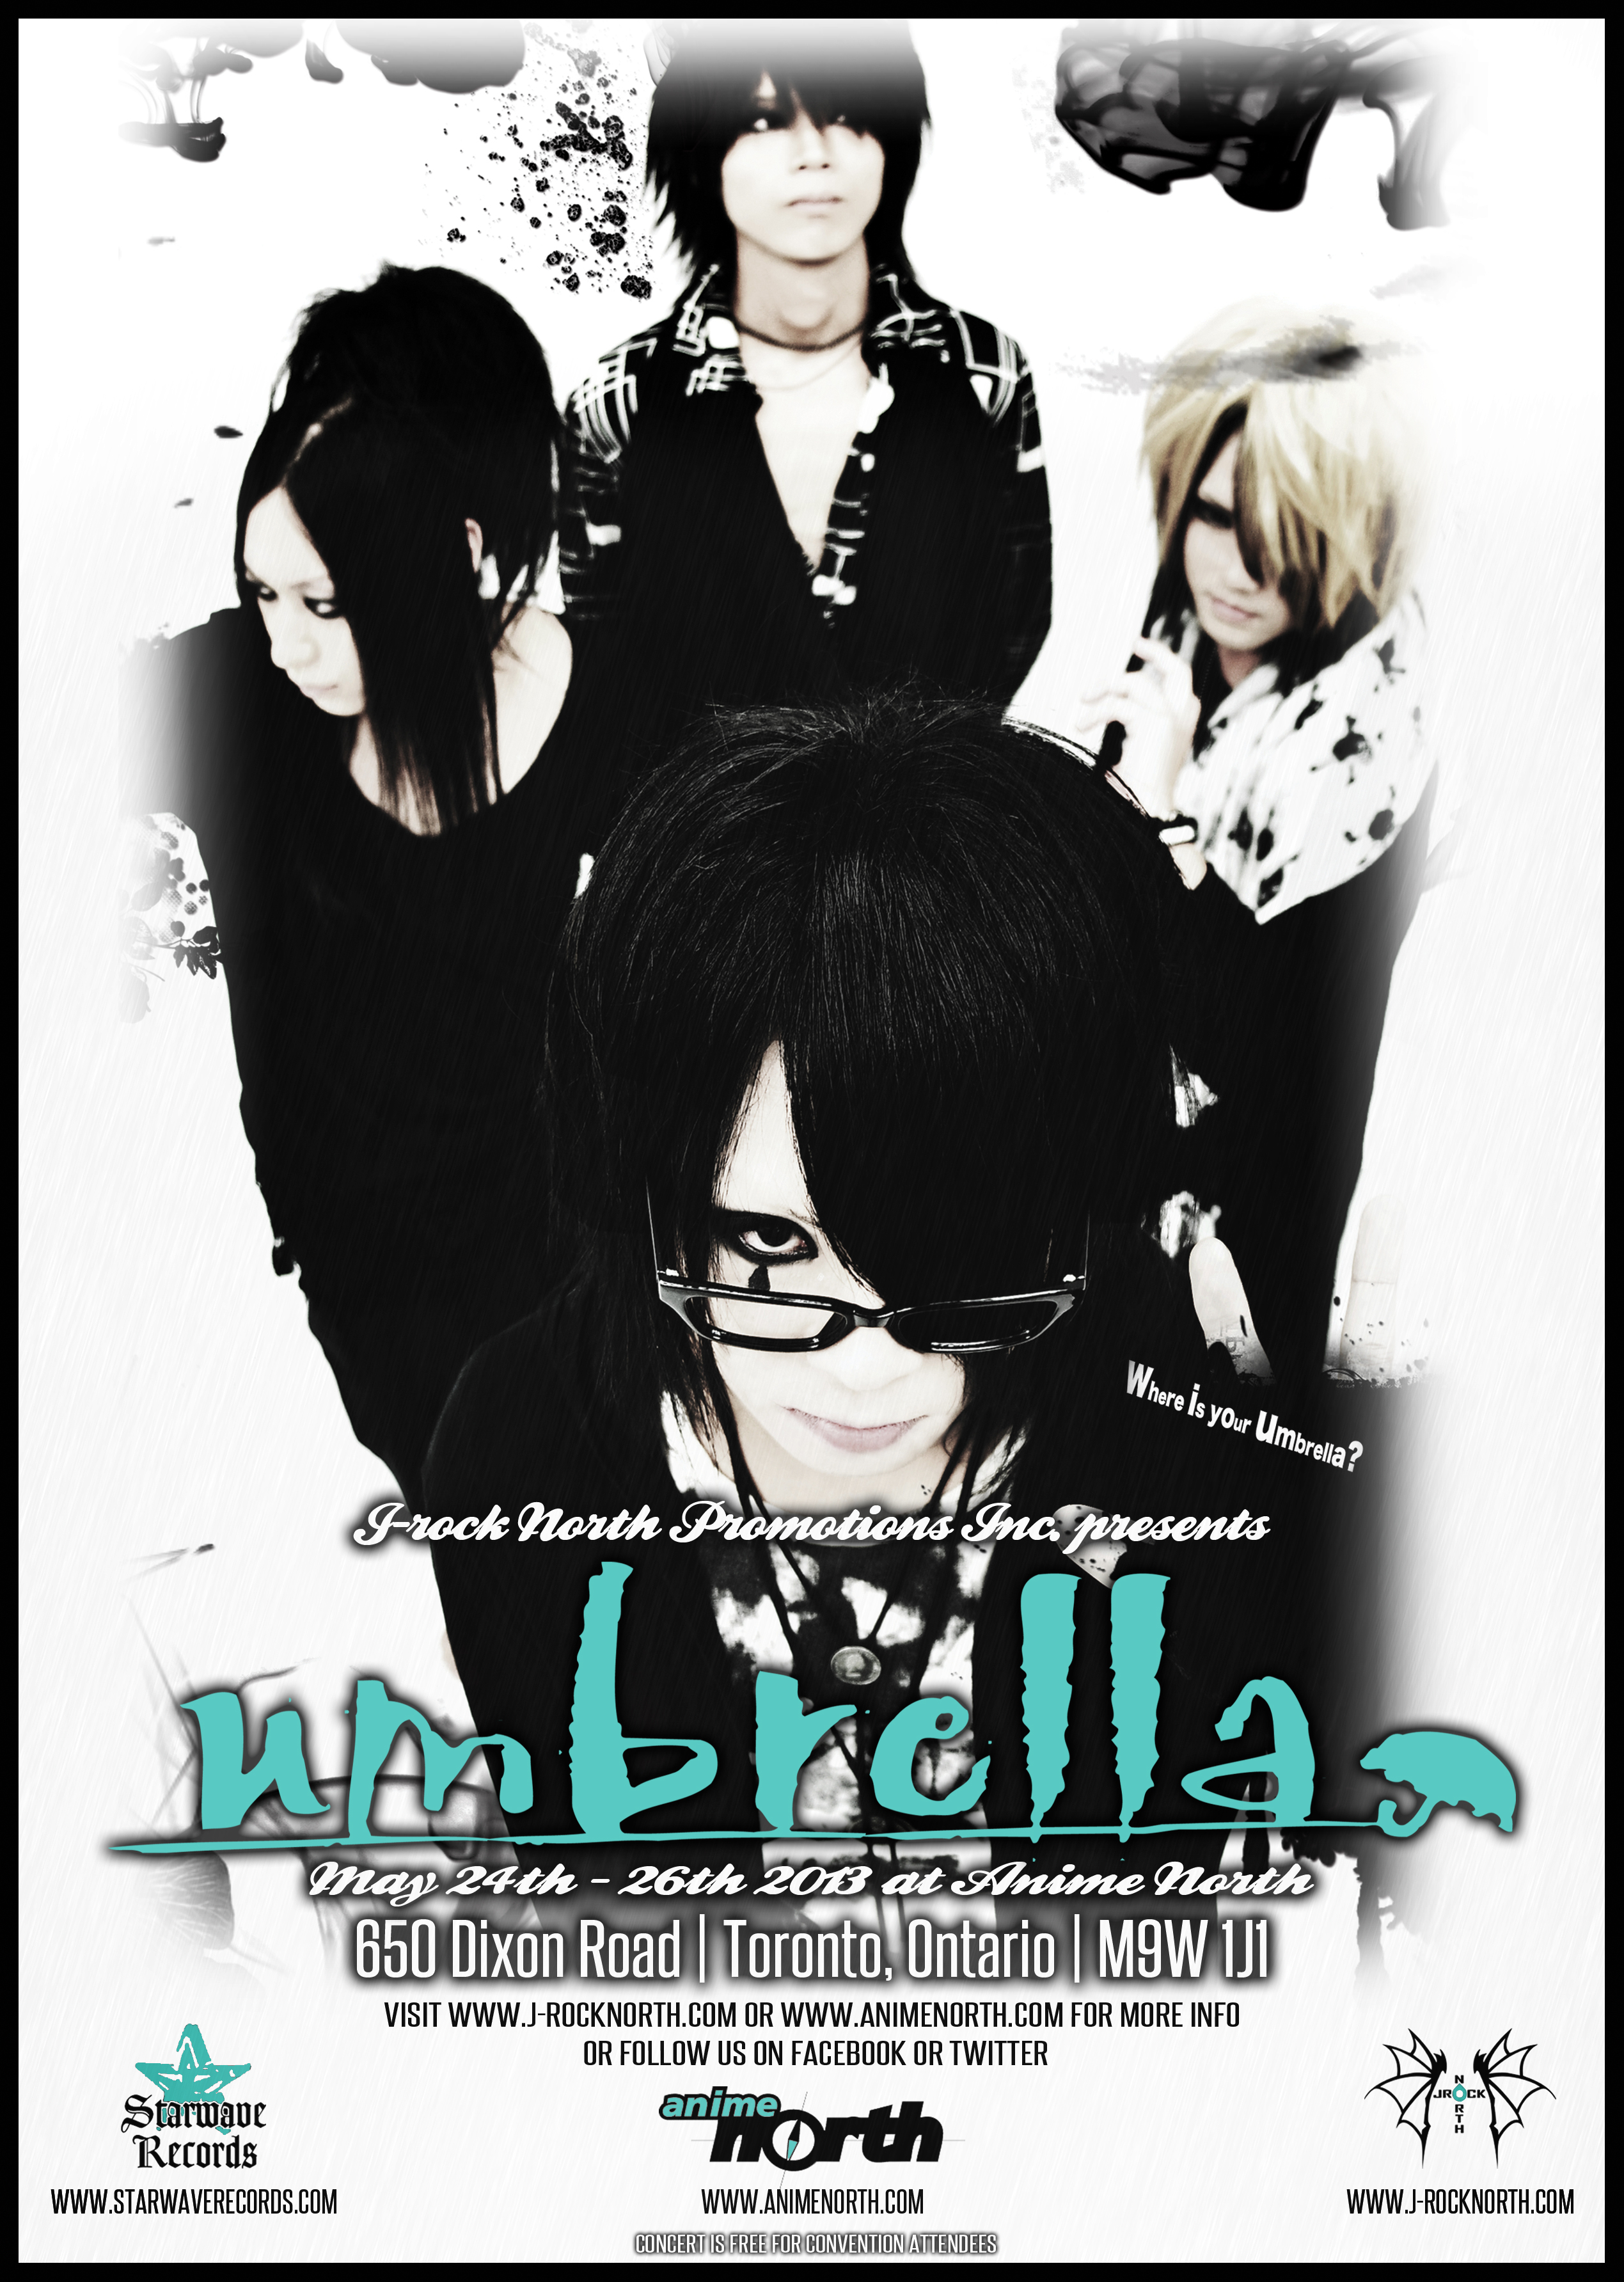 Umbrella AN 2013 poster